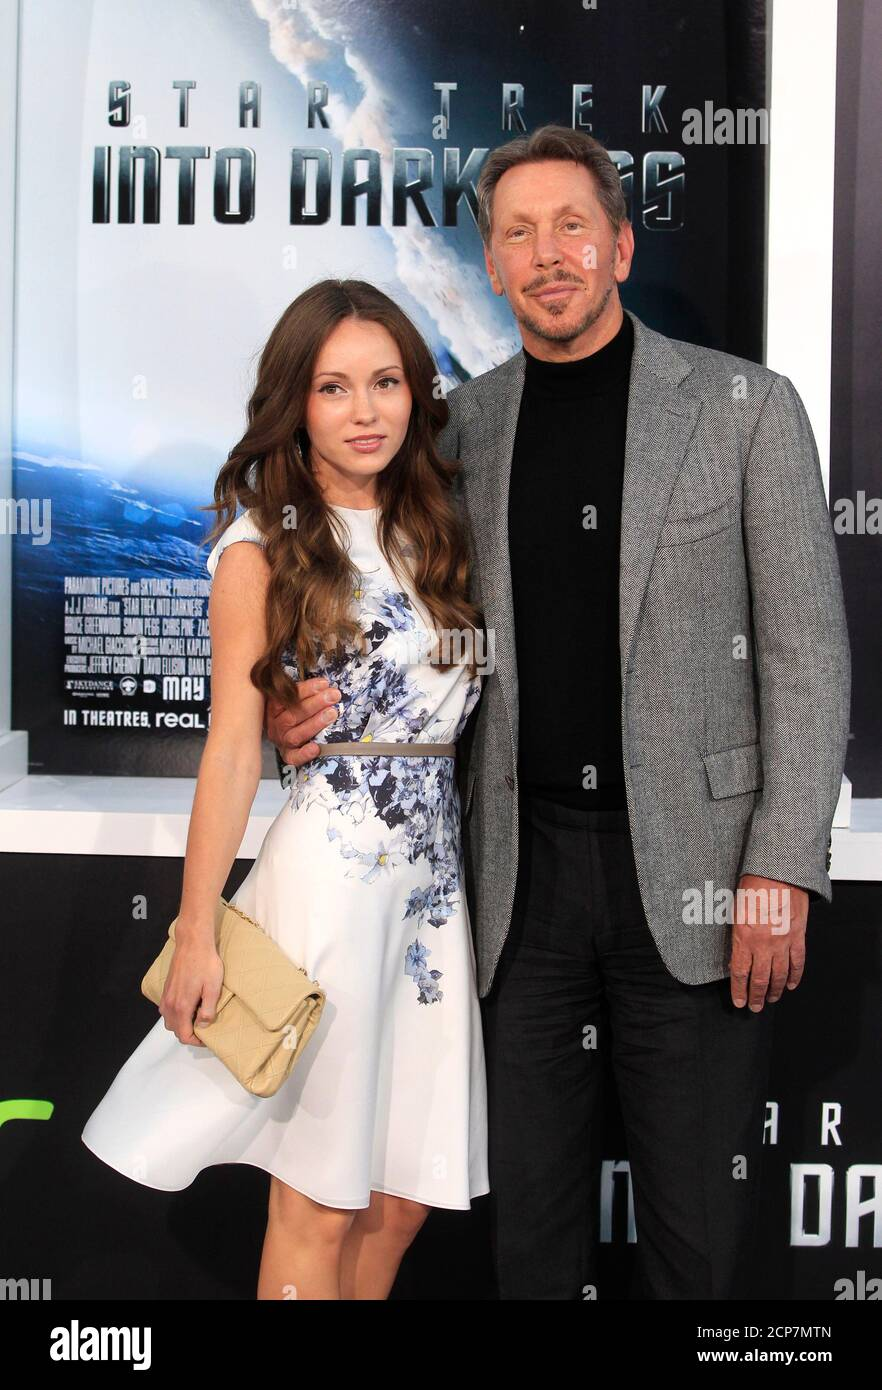 """Oracle CEO Larry Ellison and Nikita Kahn arrive as guests for the premiere of the new film """"Star Trek Into Darkness"""" in Hollywood May 14, 2013. Ellison's son David is the executive producer of the film. REUTERS/Fred Prouser (UNITED STATES - Tags: ENTERTAINMENT BUSINESS) Stock Photo"""